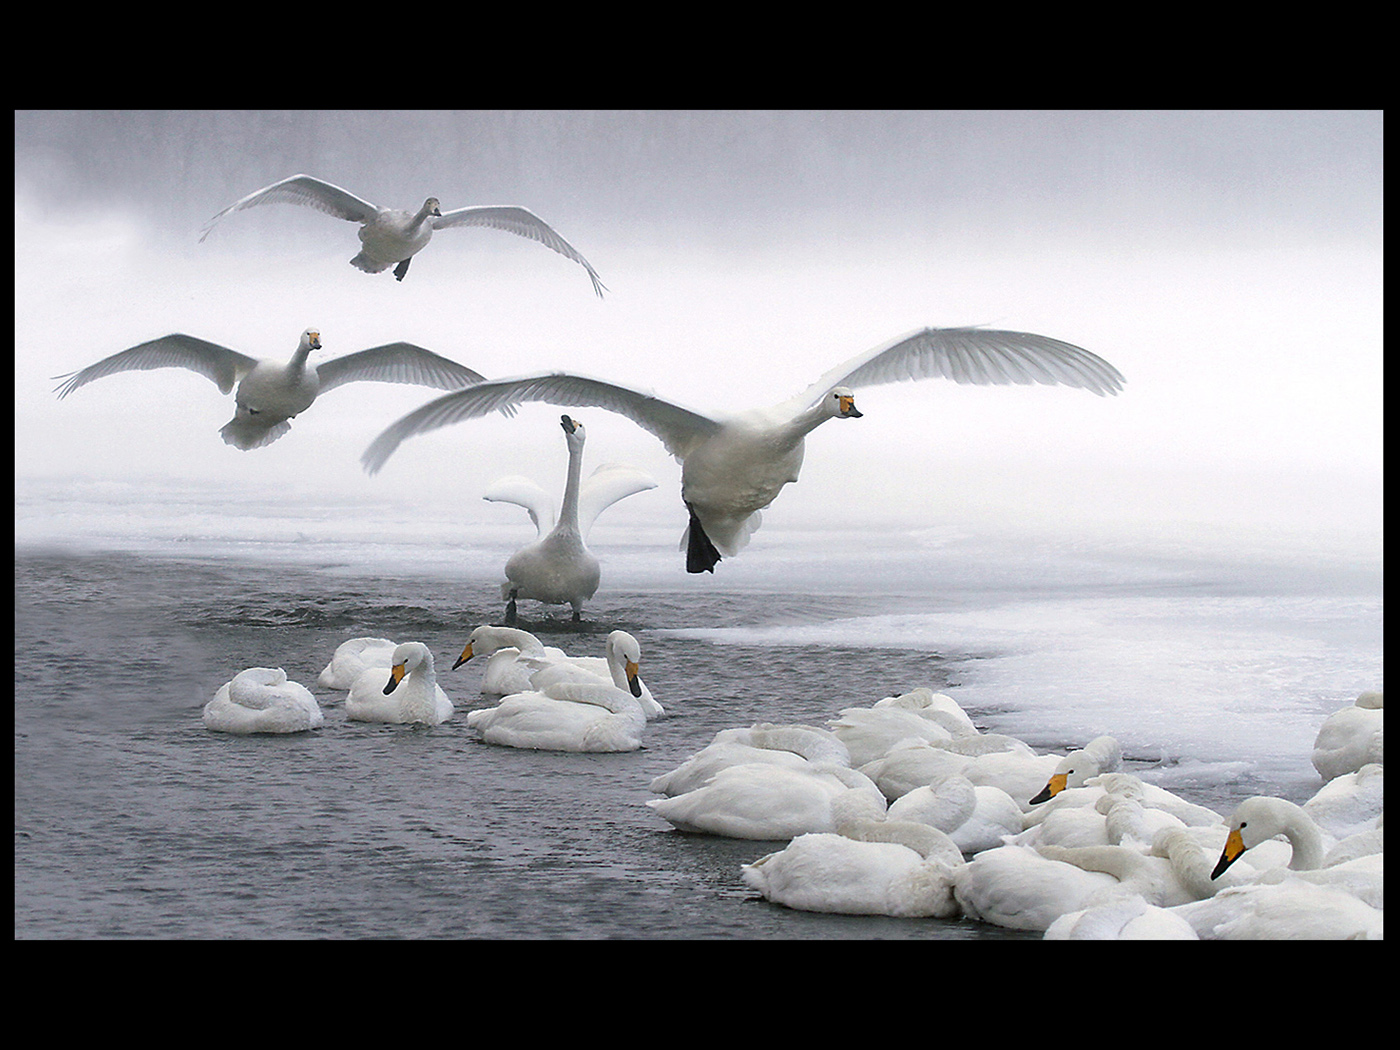 Whooper Swans in a Snow storm